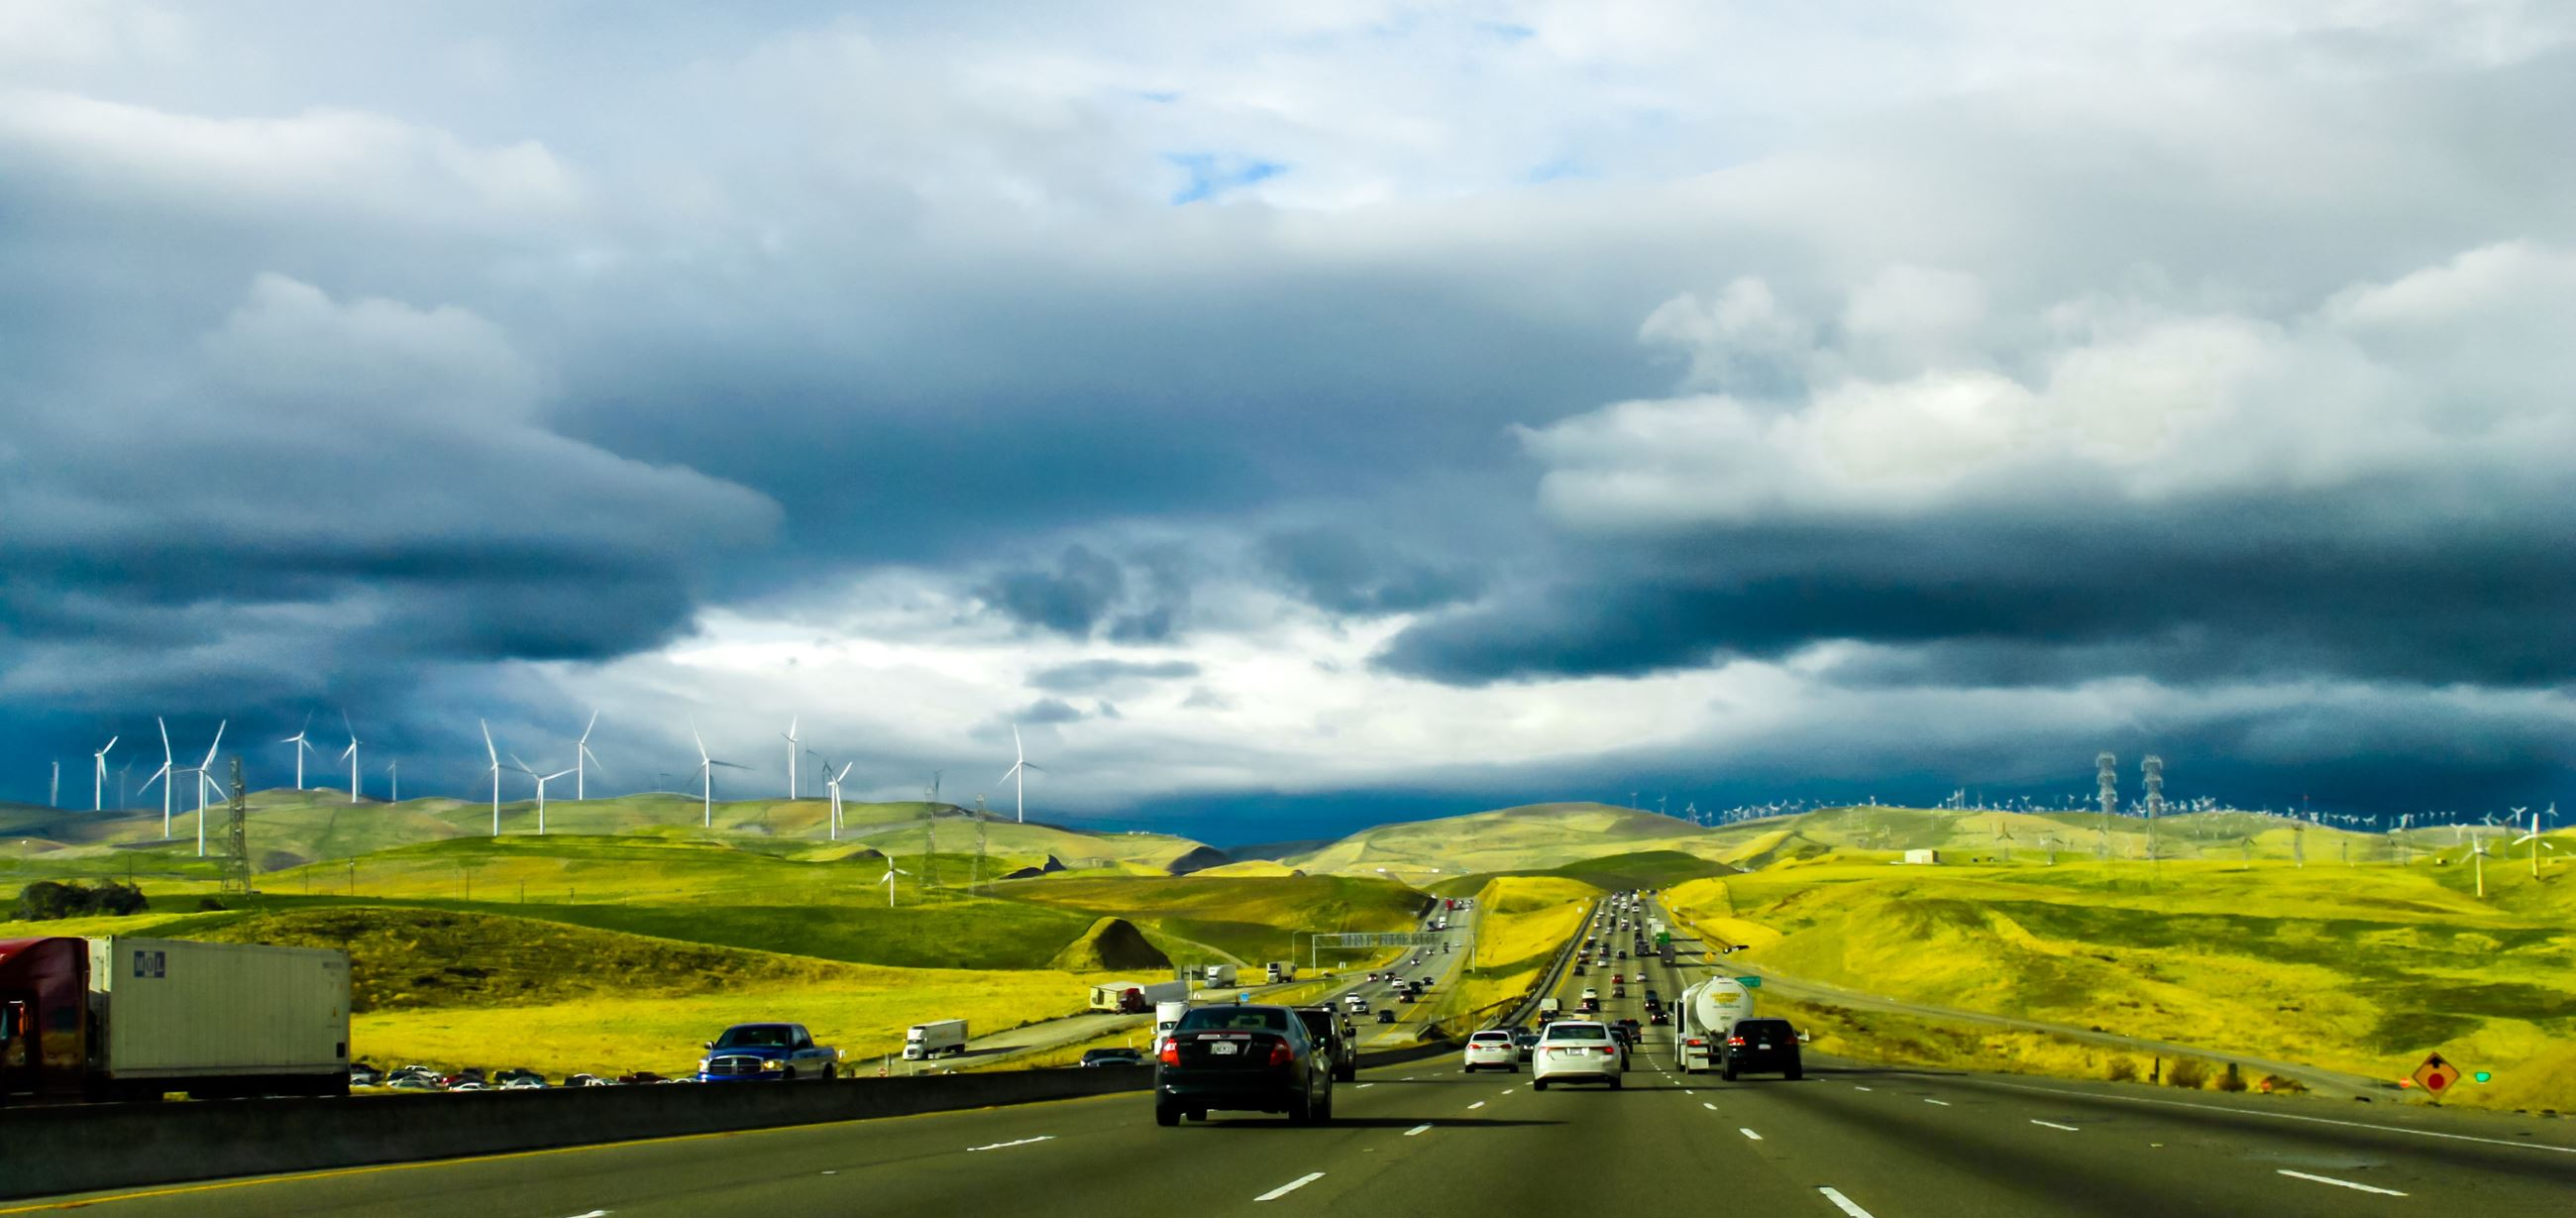 Image of a Freeway view of the Altamont Pass